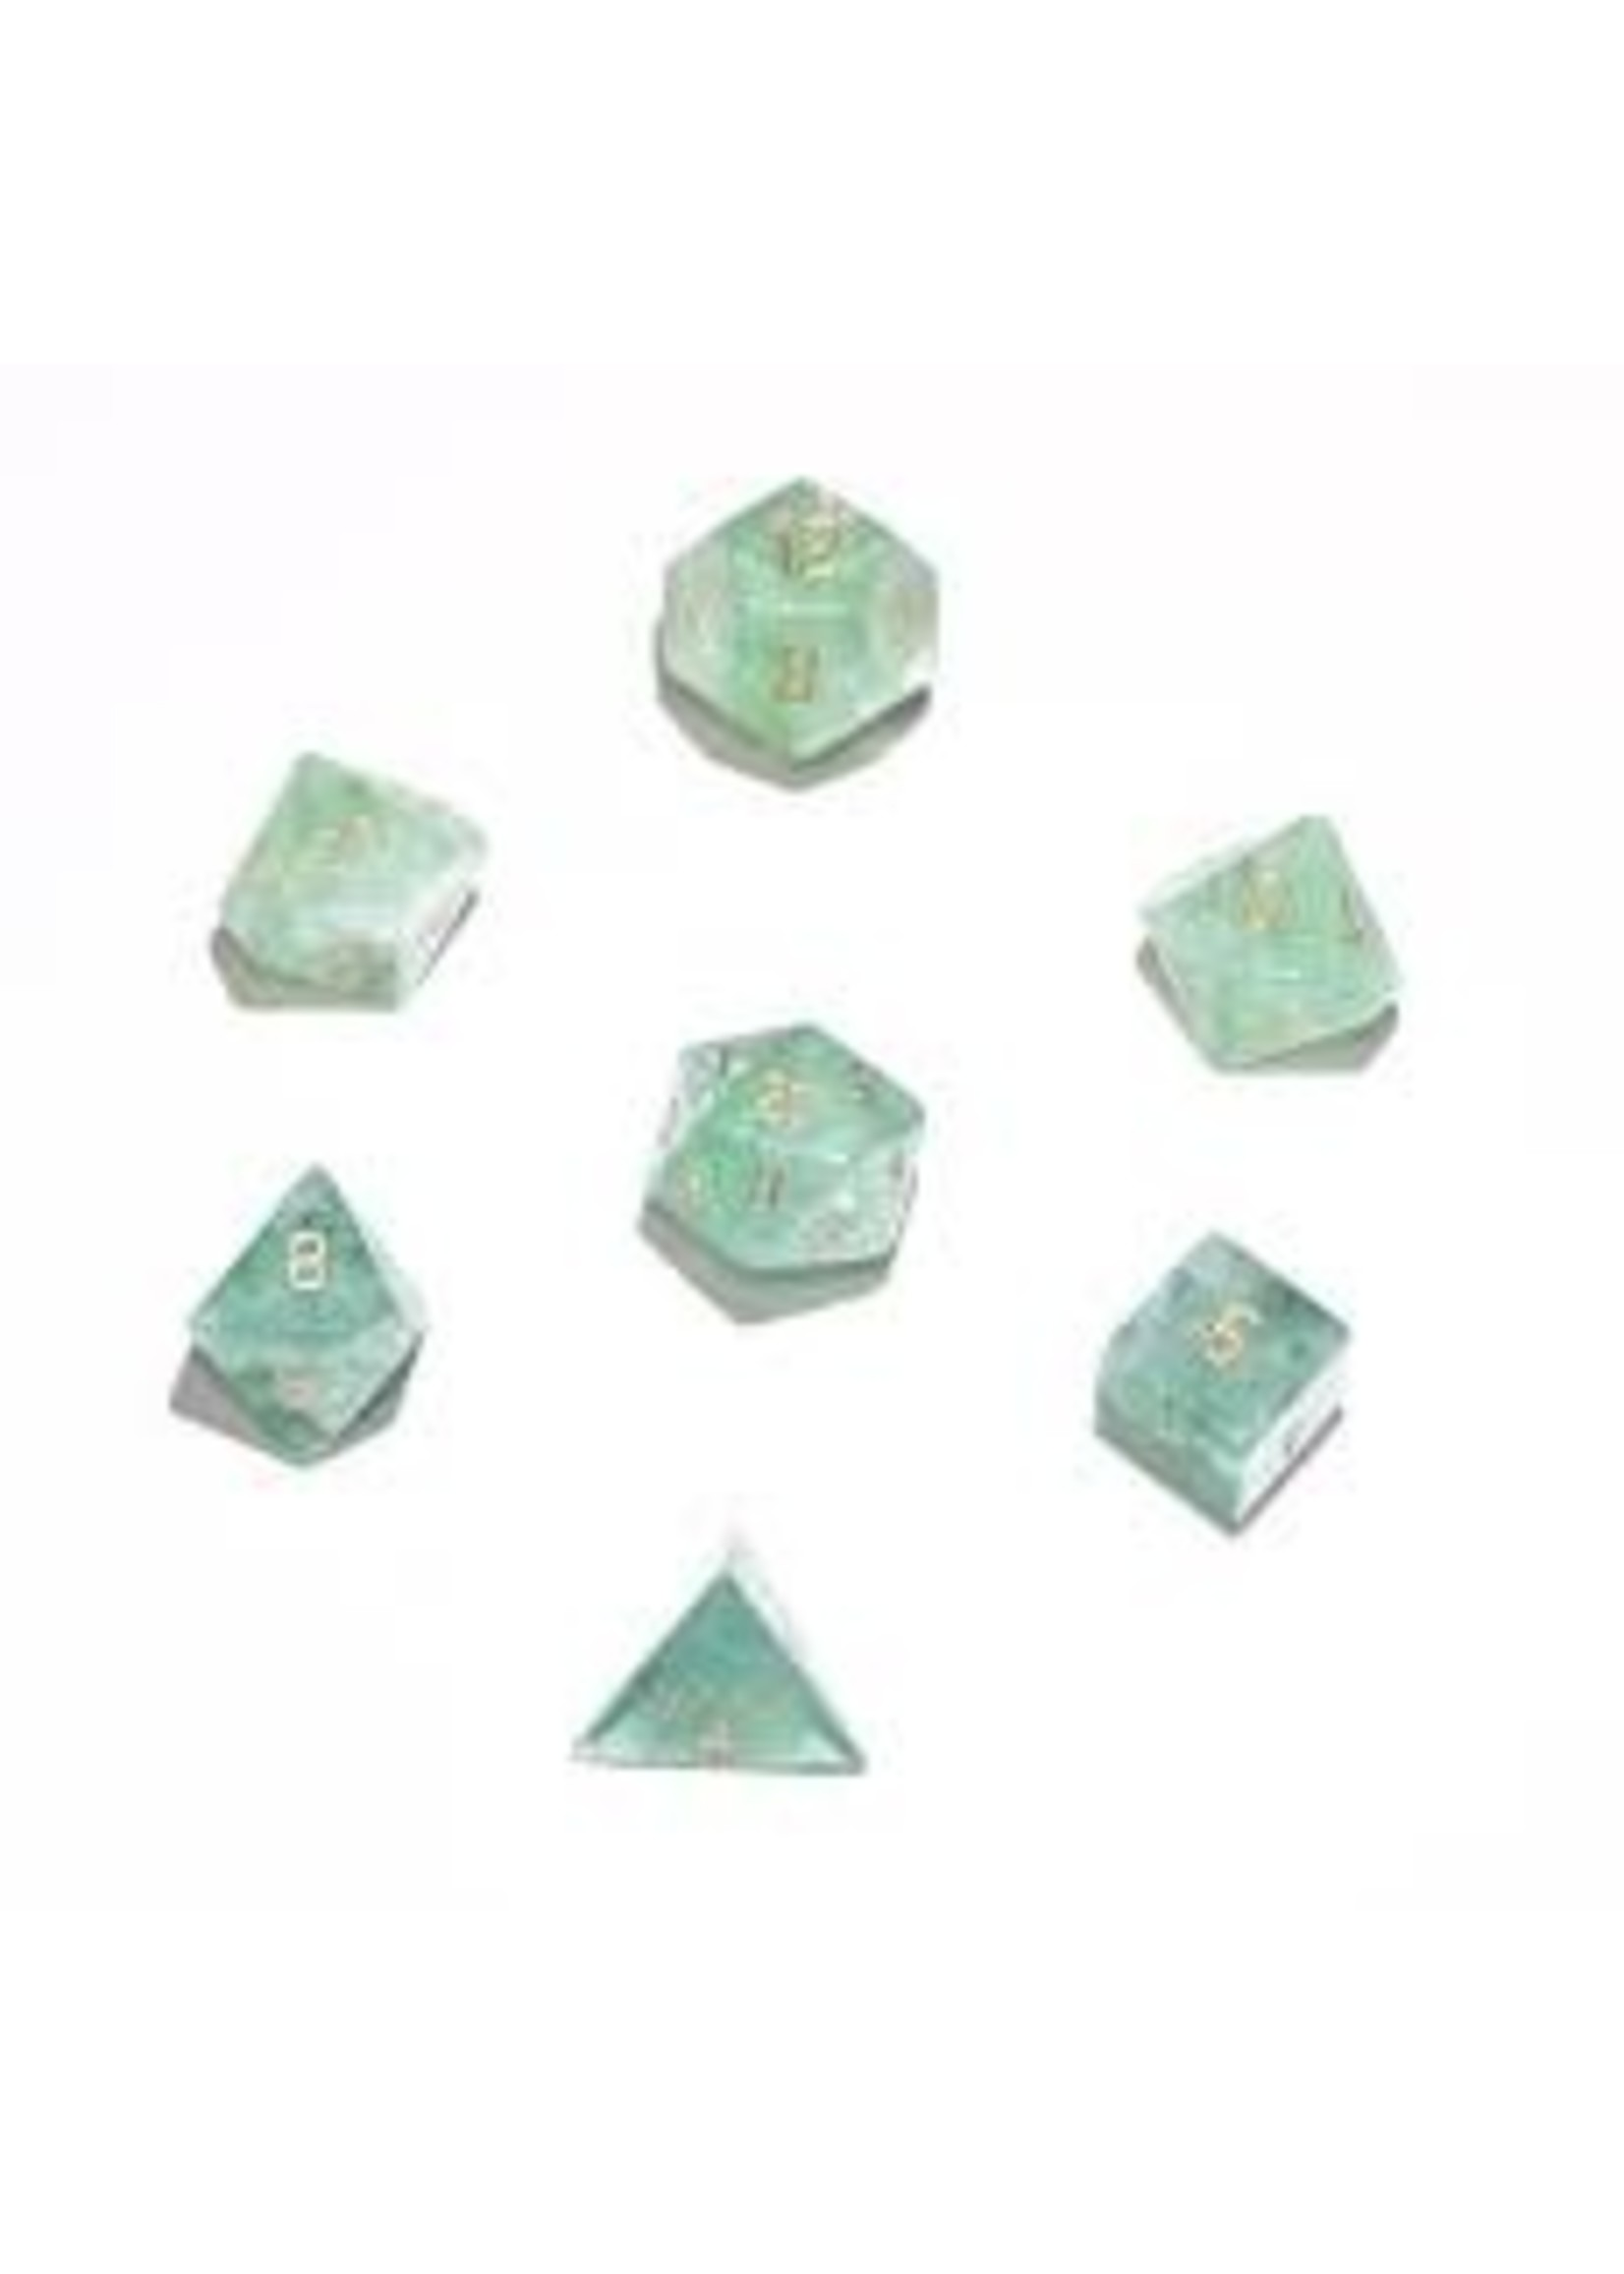 Crystal Caste 16mm Green Flourite - large 7 set (gold numbers)